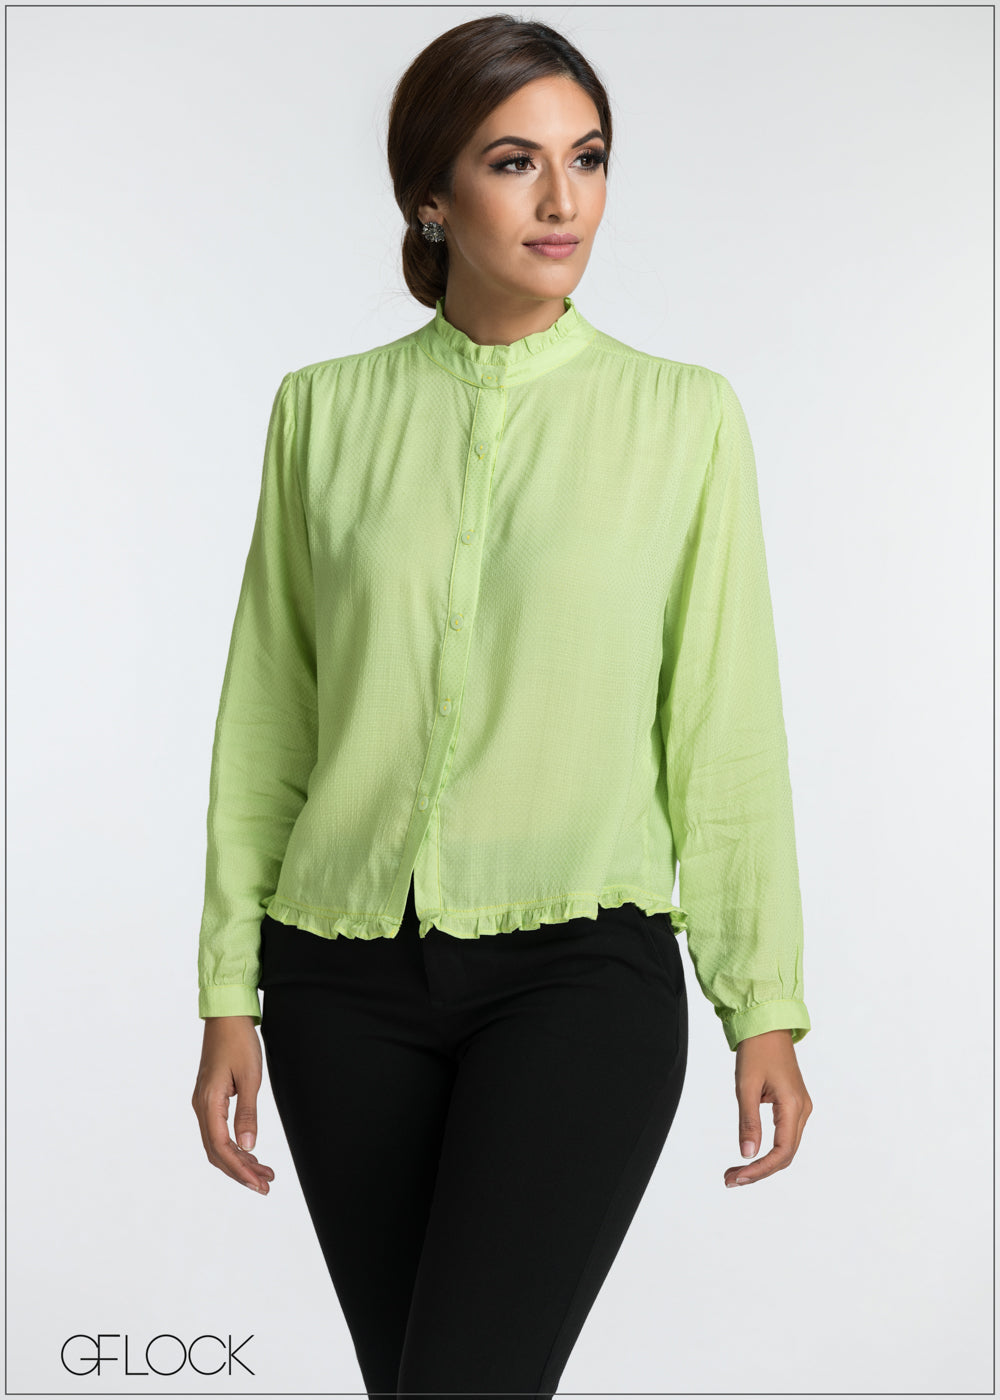 Front Button Detailed Workwear Top - GFLOCK.LK